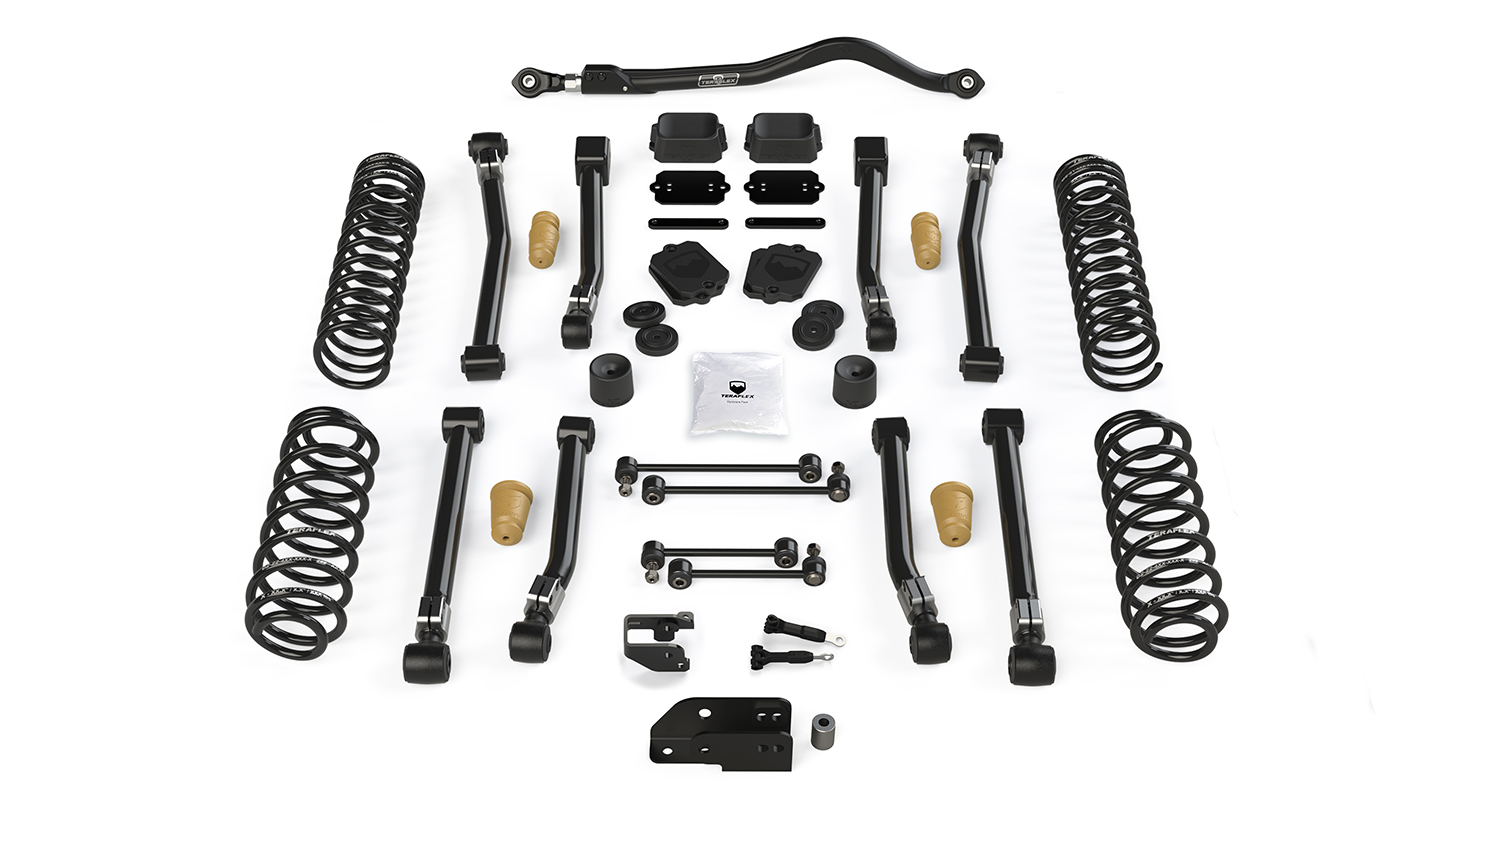 Teraflex 3.5in Alpine CT3 Short Arm Lift Kit - w/o Shocks - JL 4dr